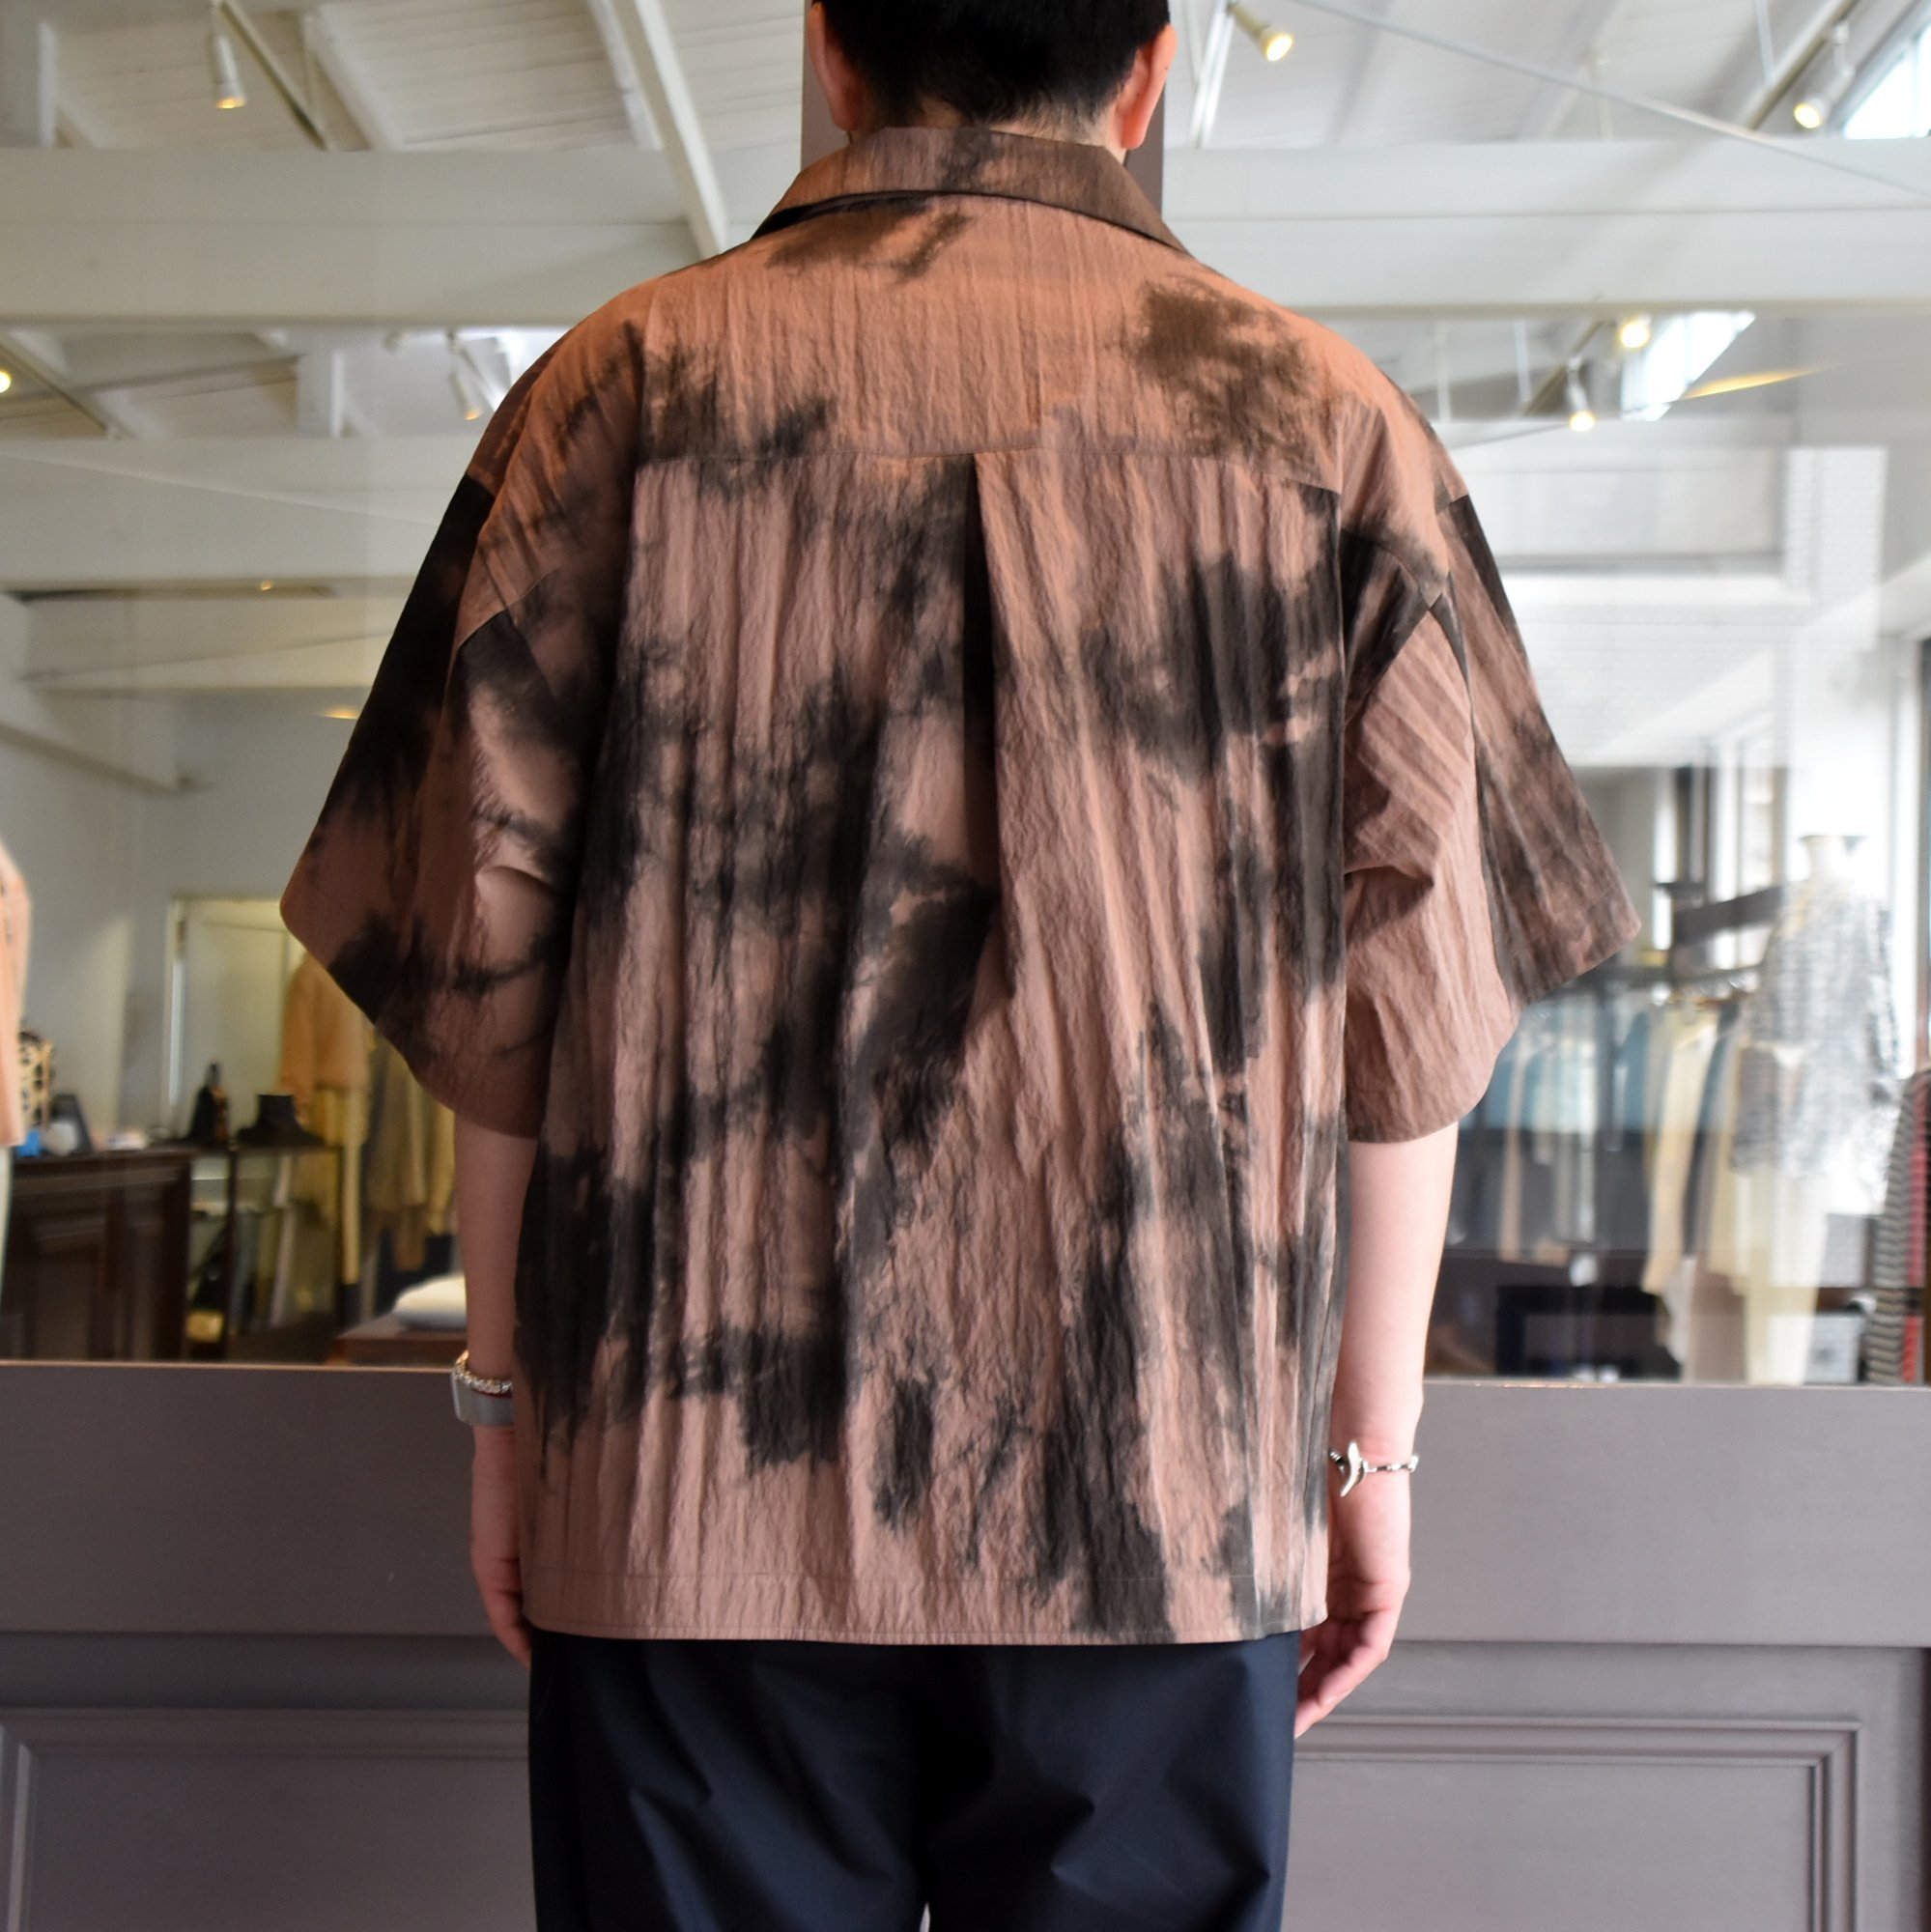 [2021]amachi.(アマチ) Packable Meeting Shirt -Brown Uneven Dye- #AY8-14(5)